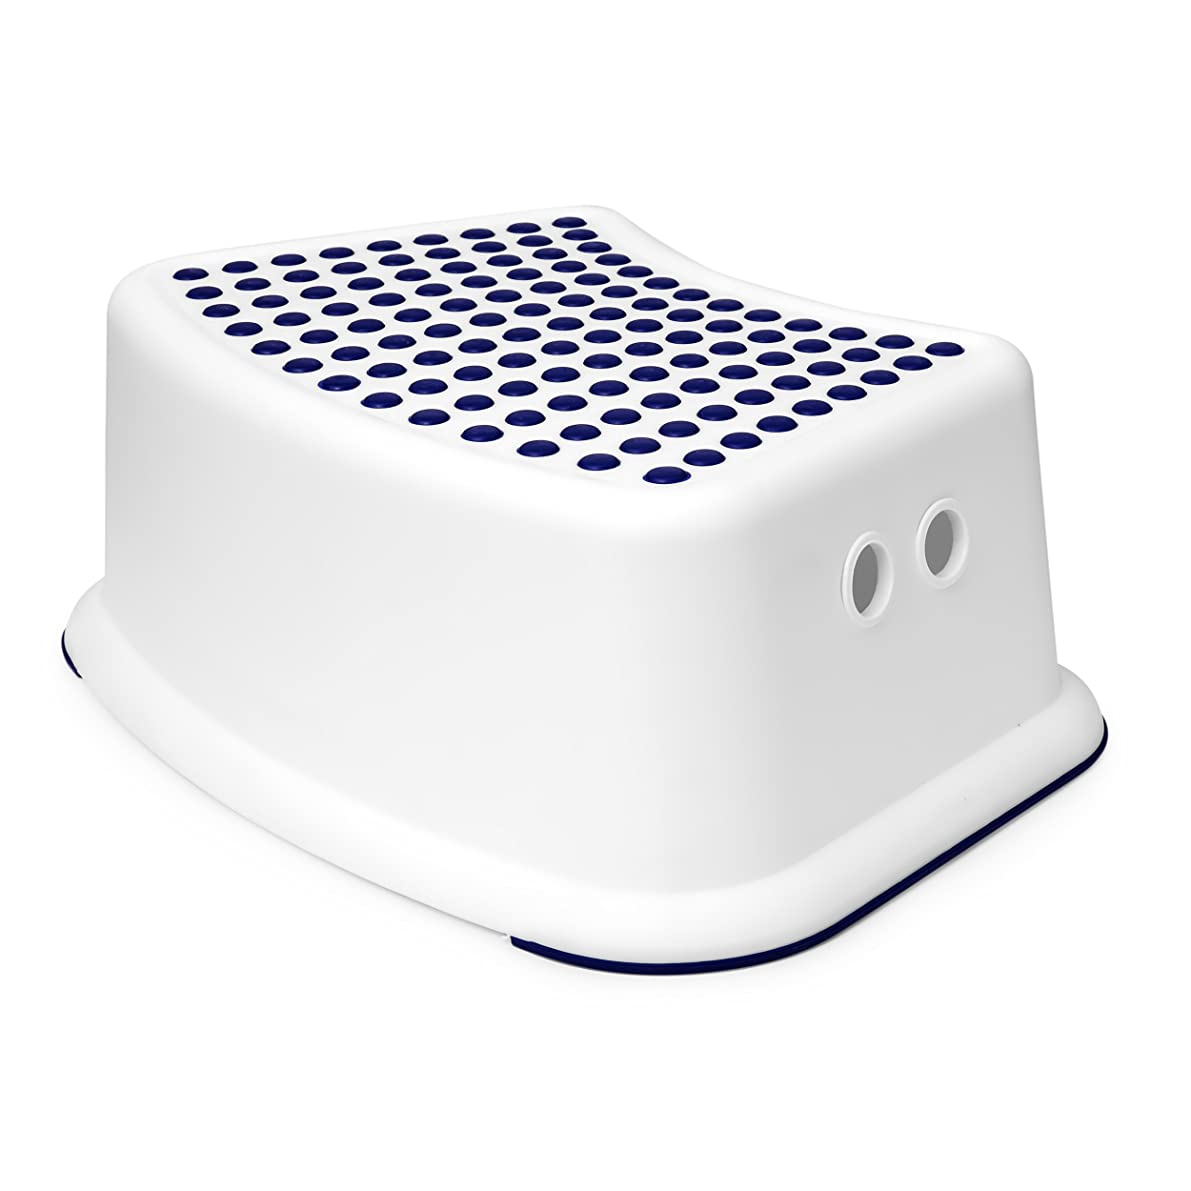 Tundras Boys Blue Step Stool - Great for Potty Training, Bathroom, Bedroom, Toy Room, Kitchen, and Living Room. Perfect for Your House